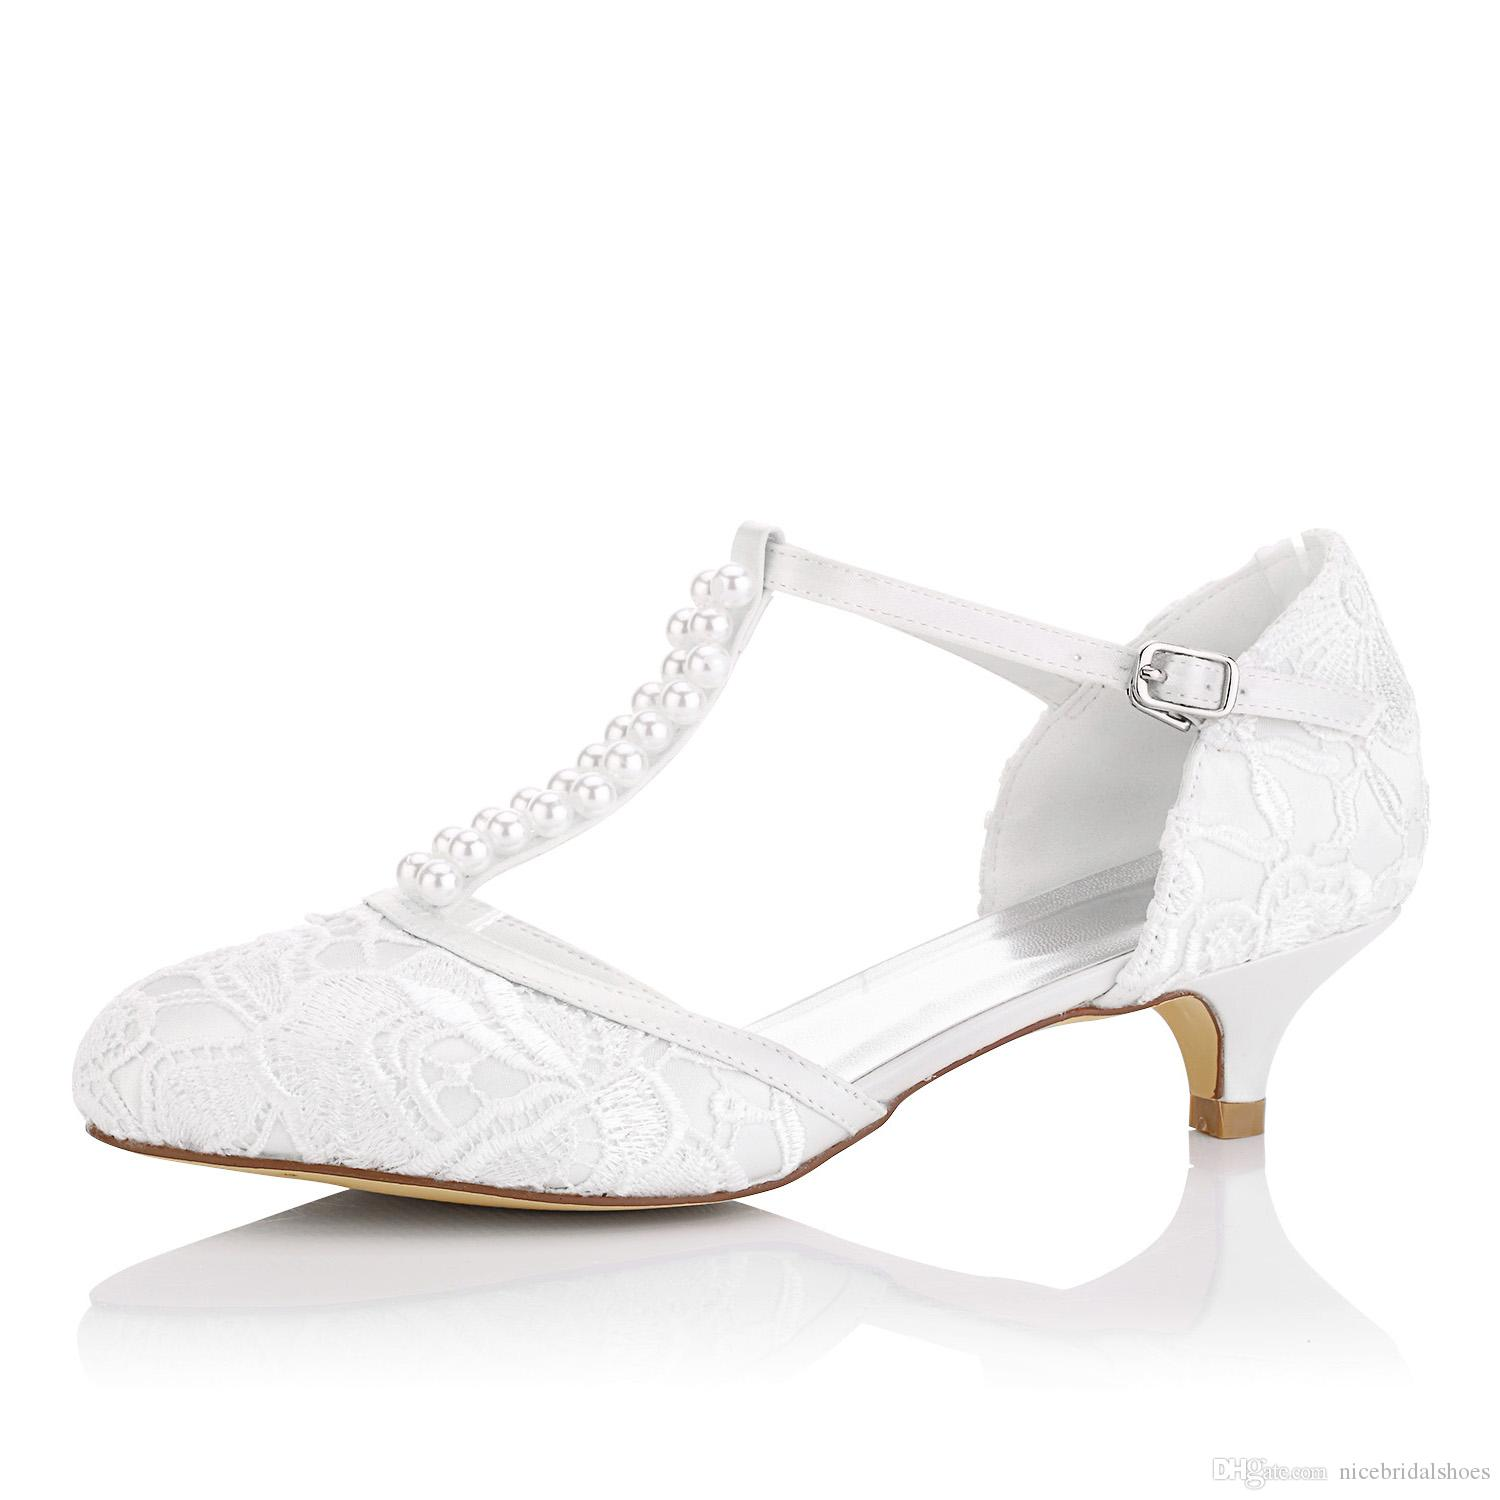 nice little heel lace upper dyeable wedding dress shoe bridal shoes